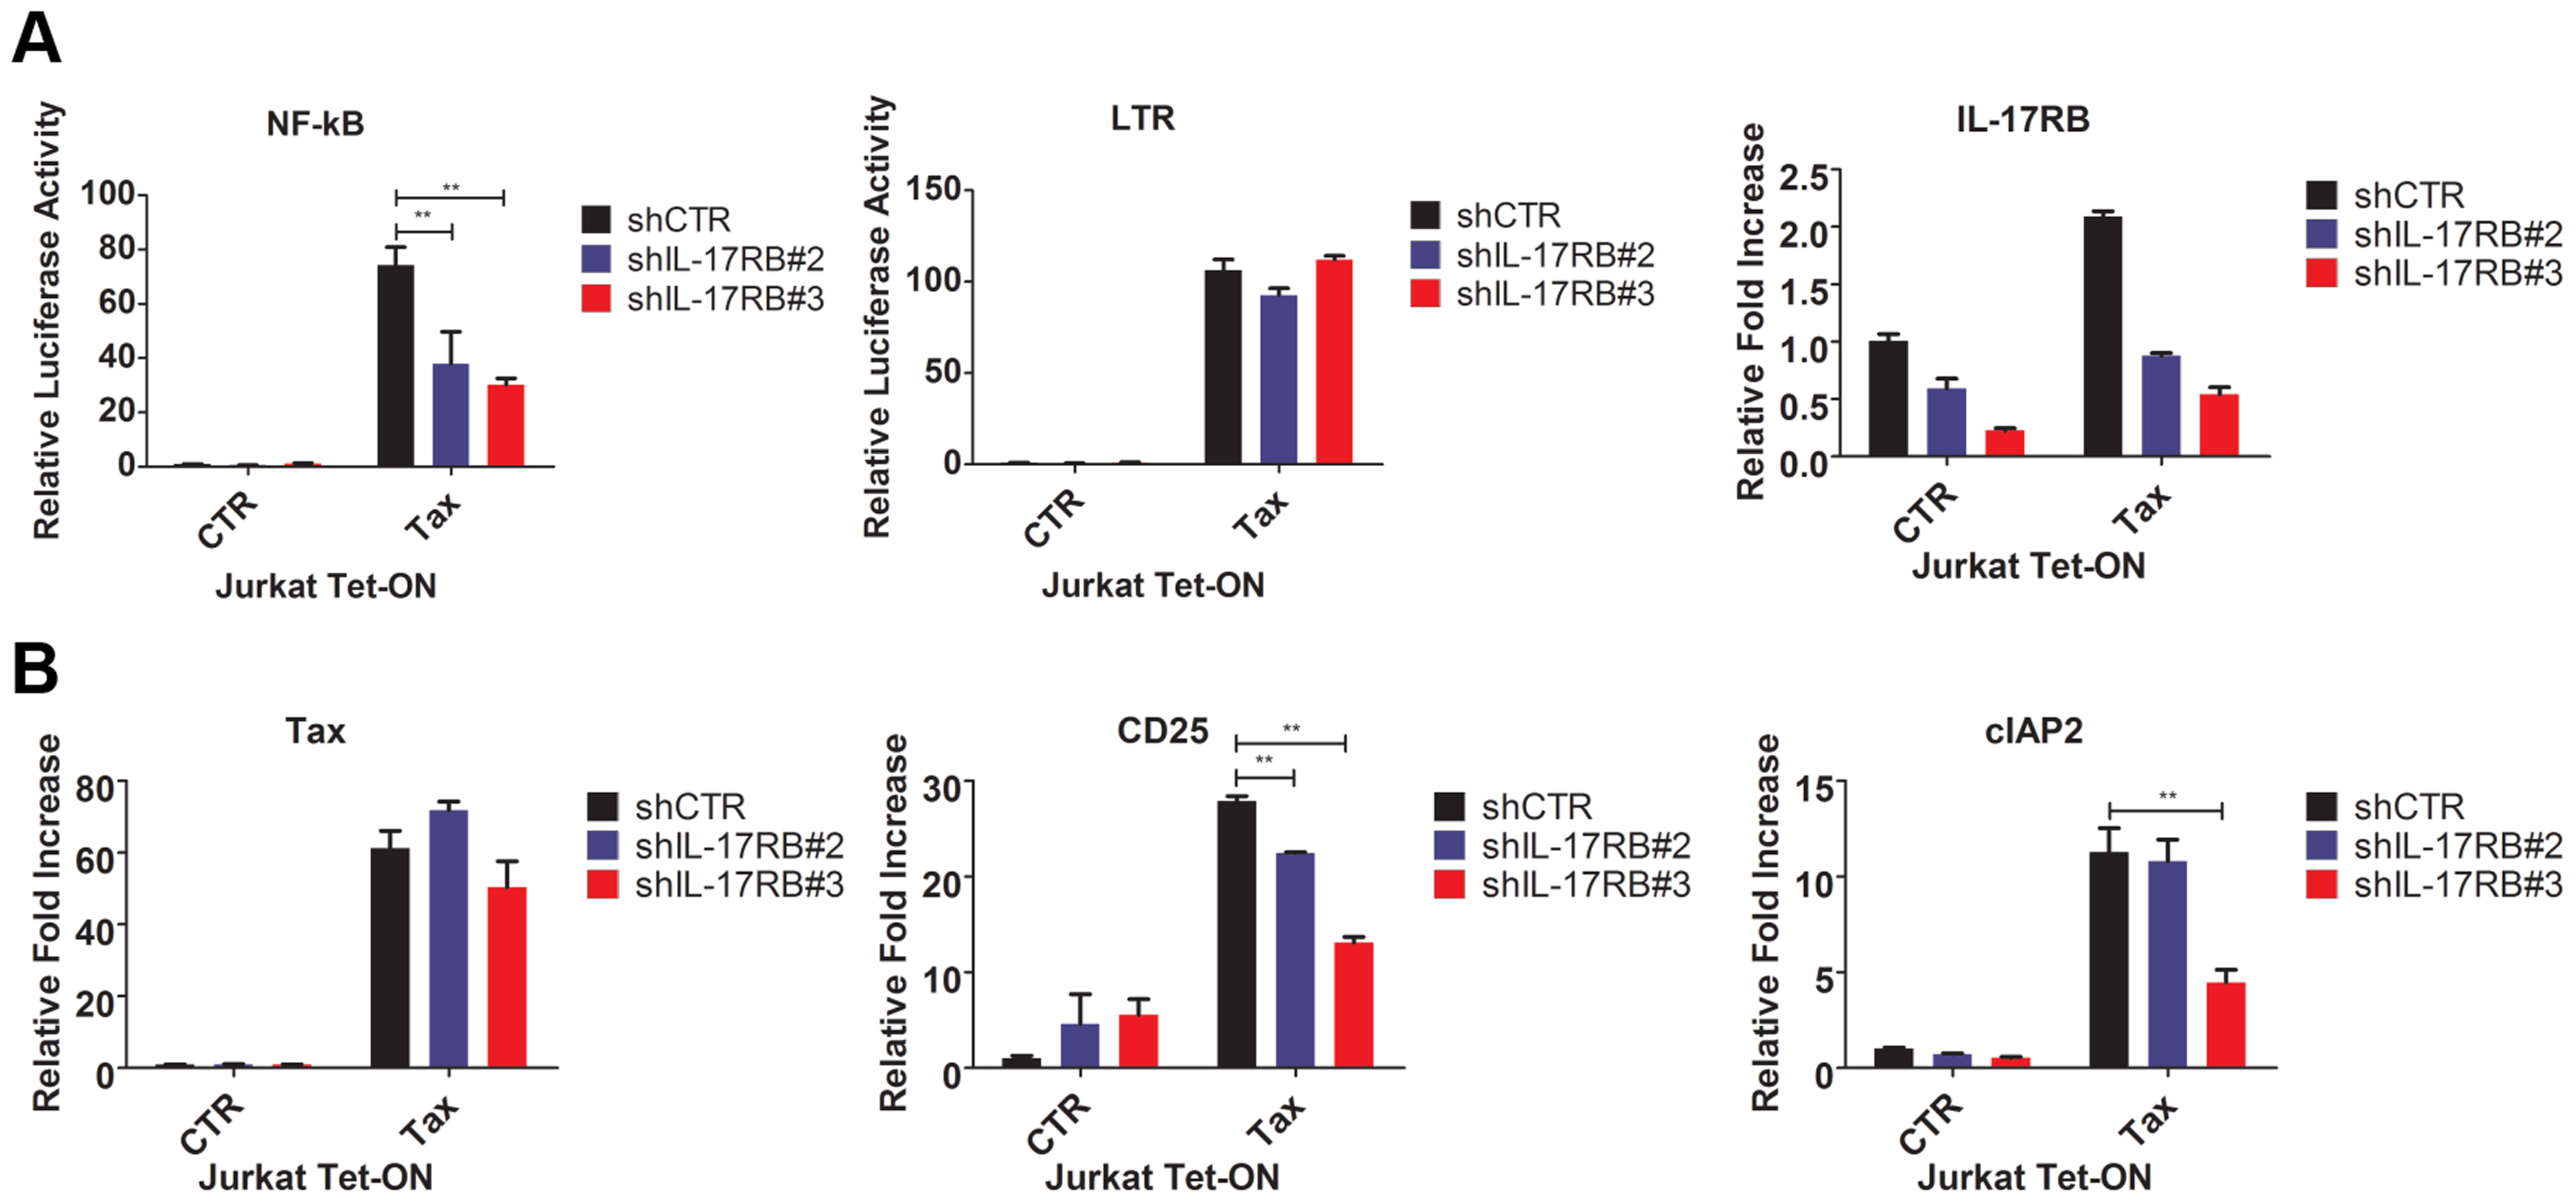 Tax requires IL-17RB for NF-κB activation in T cells.